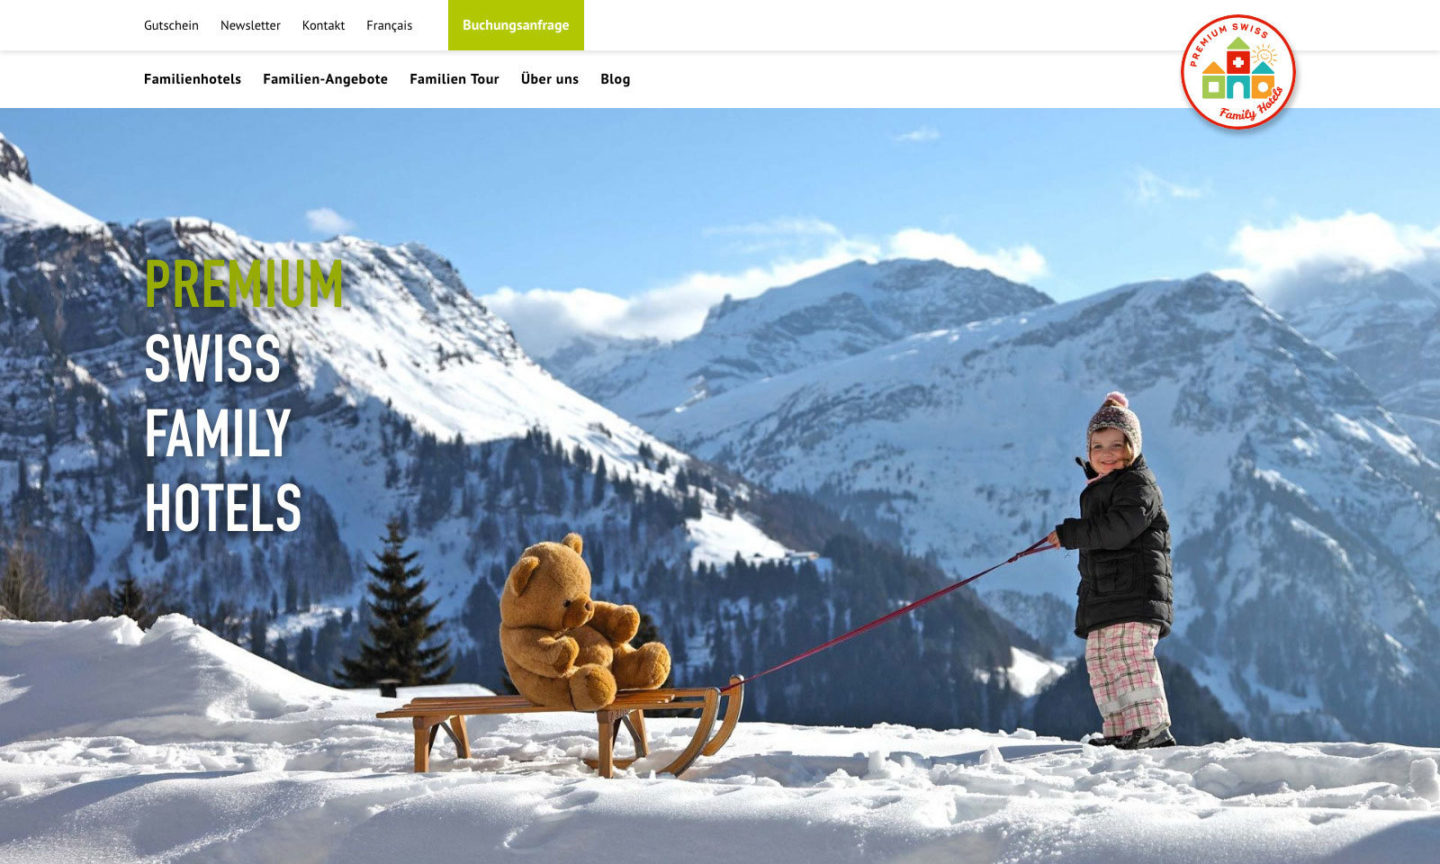 Digital Webdesign Premium Swiss Family Hotels Webseite Home